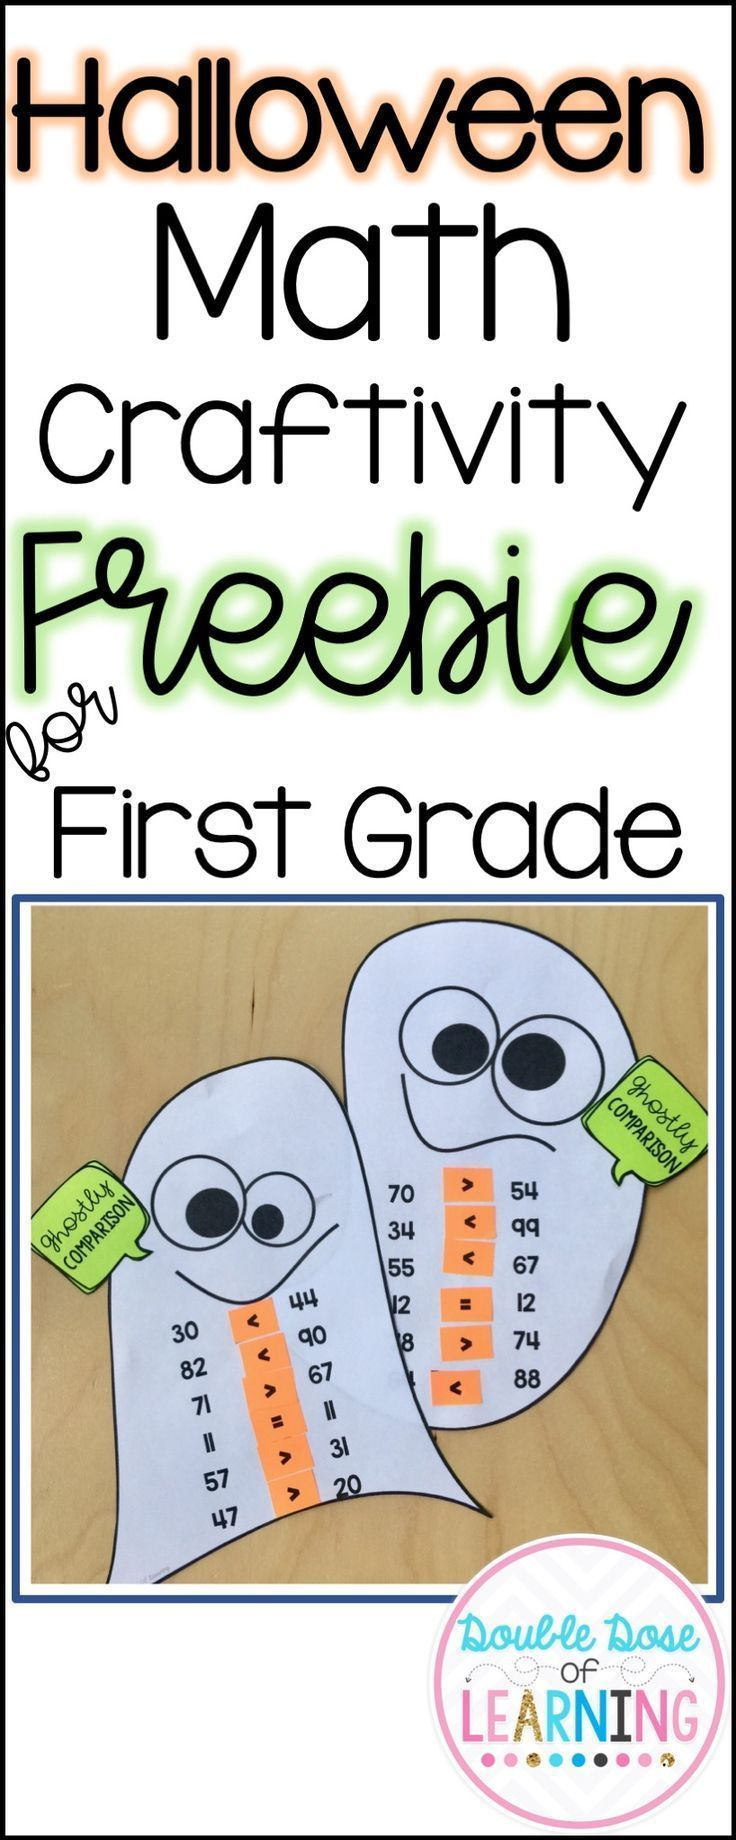 First Graders LOVE to have spooky fun in October and we made it easy for you to give your students math practice this Halloween season with a cute ghost craft. It can also be used for an easy bulletin board display! Win-Win!